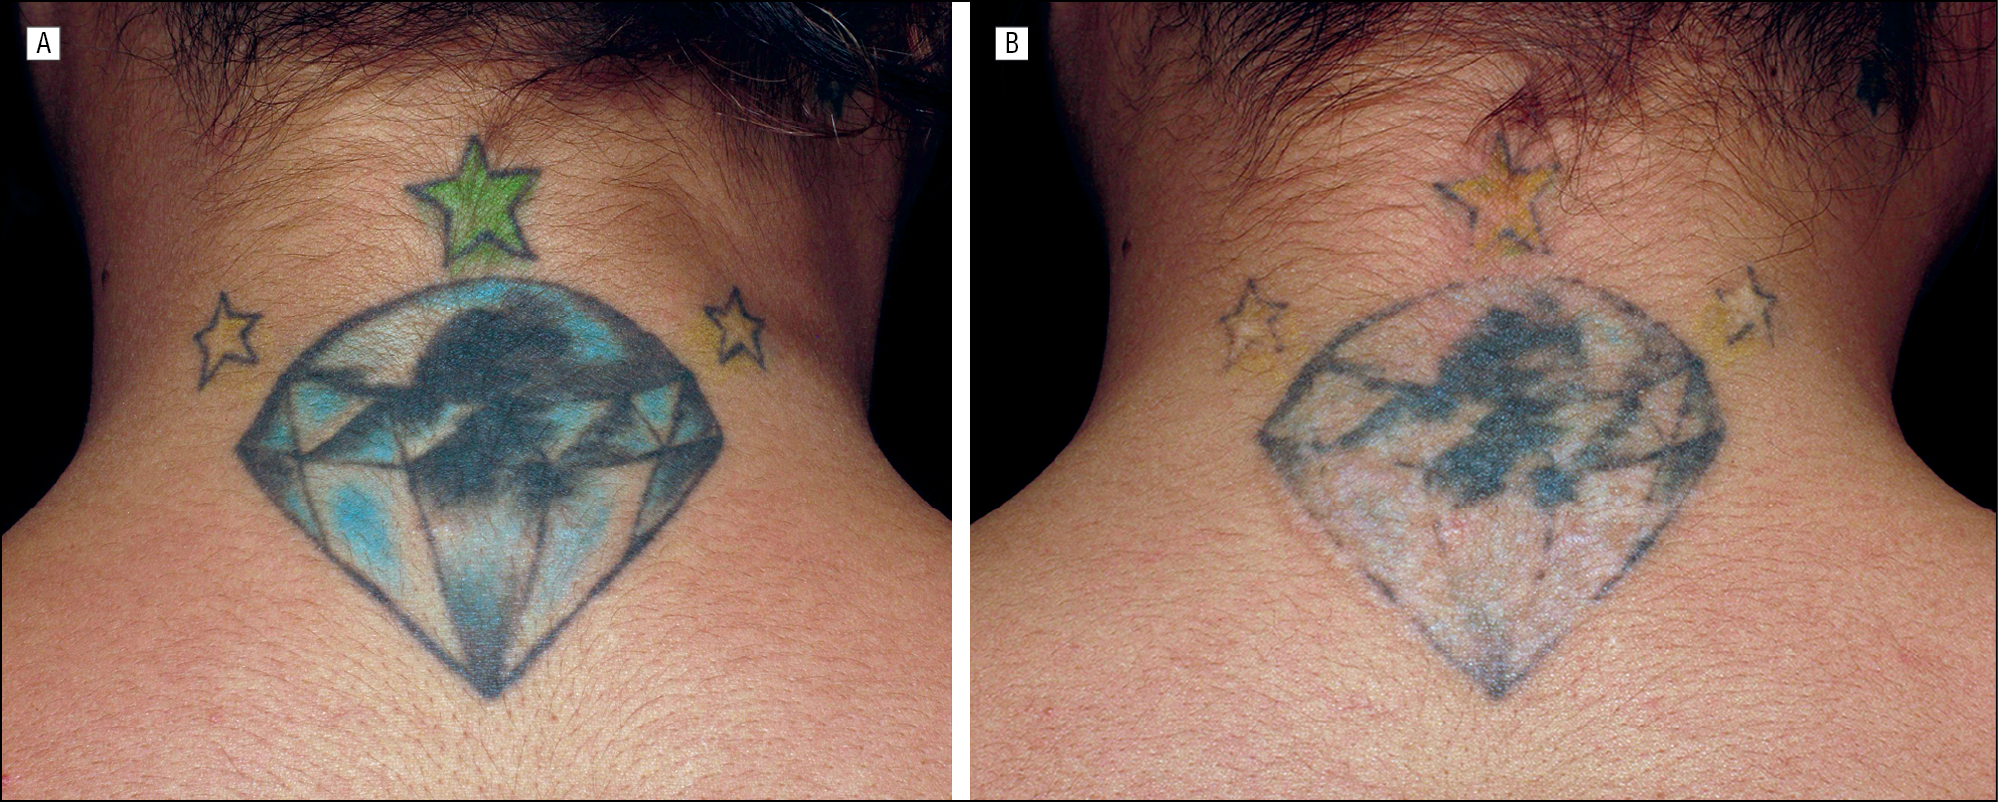 Successful And Rapid Treatment Of Blue And Green Tattoo Pigment With